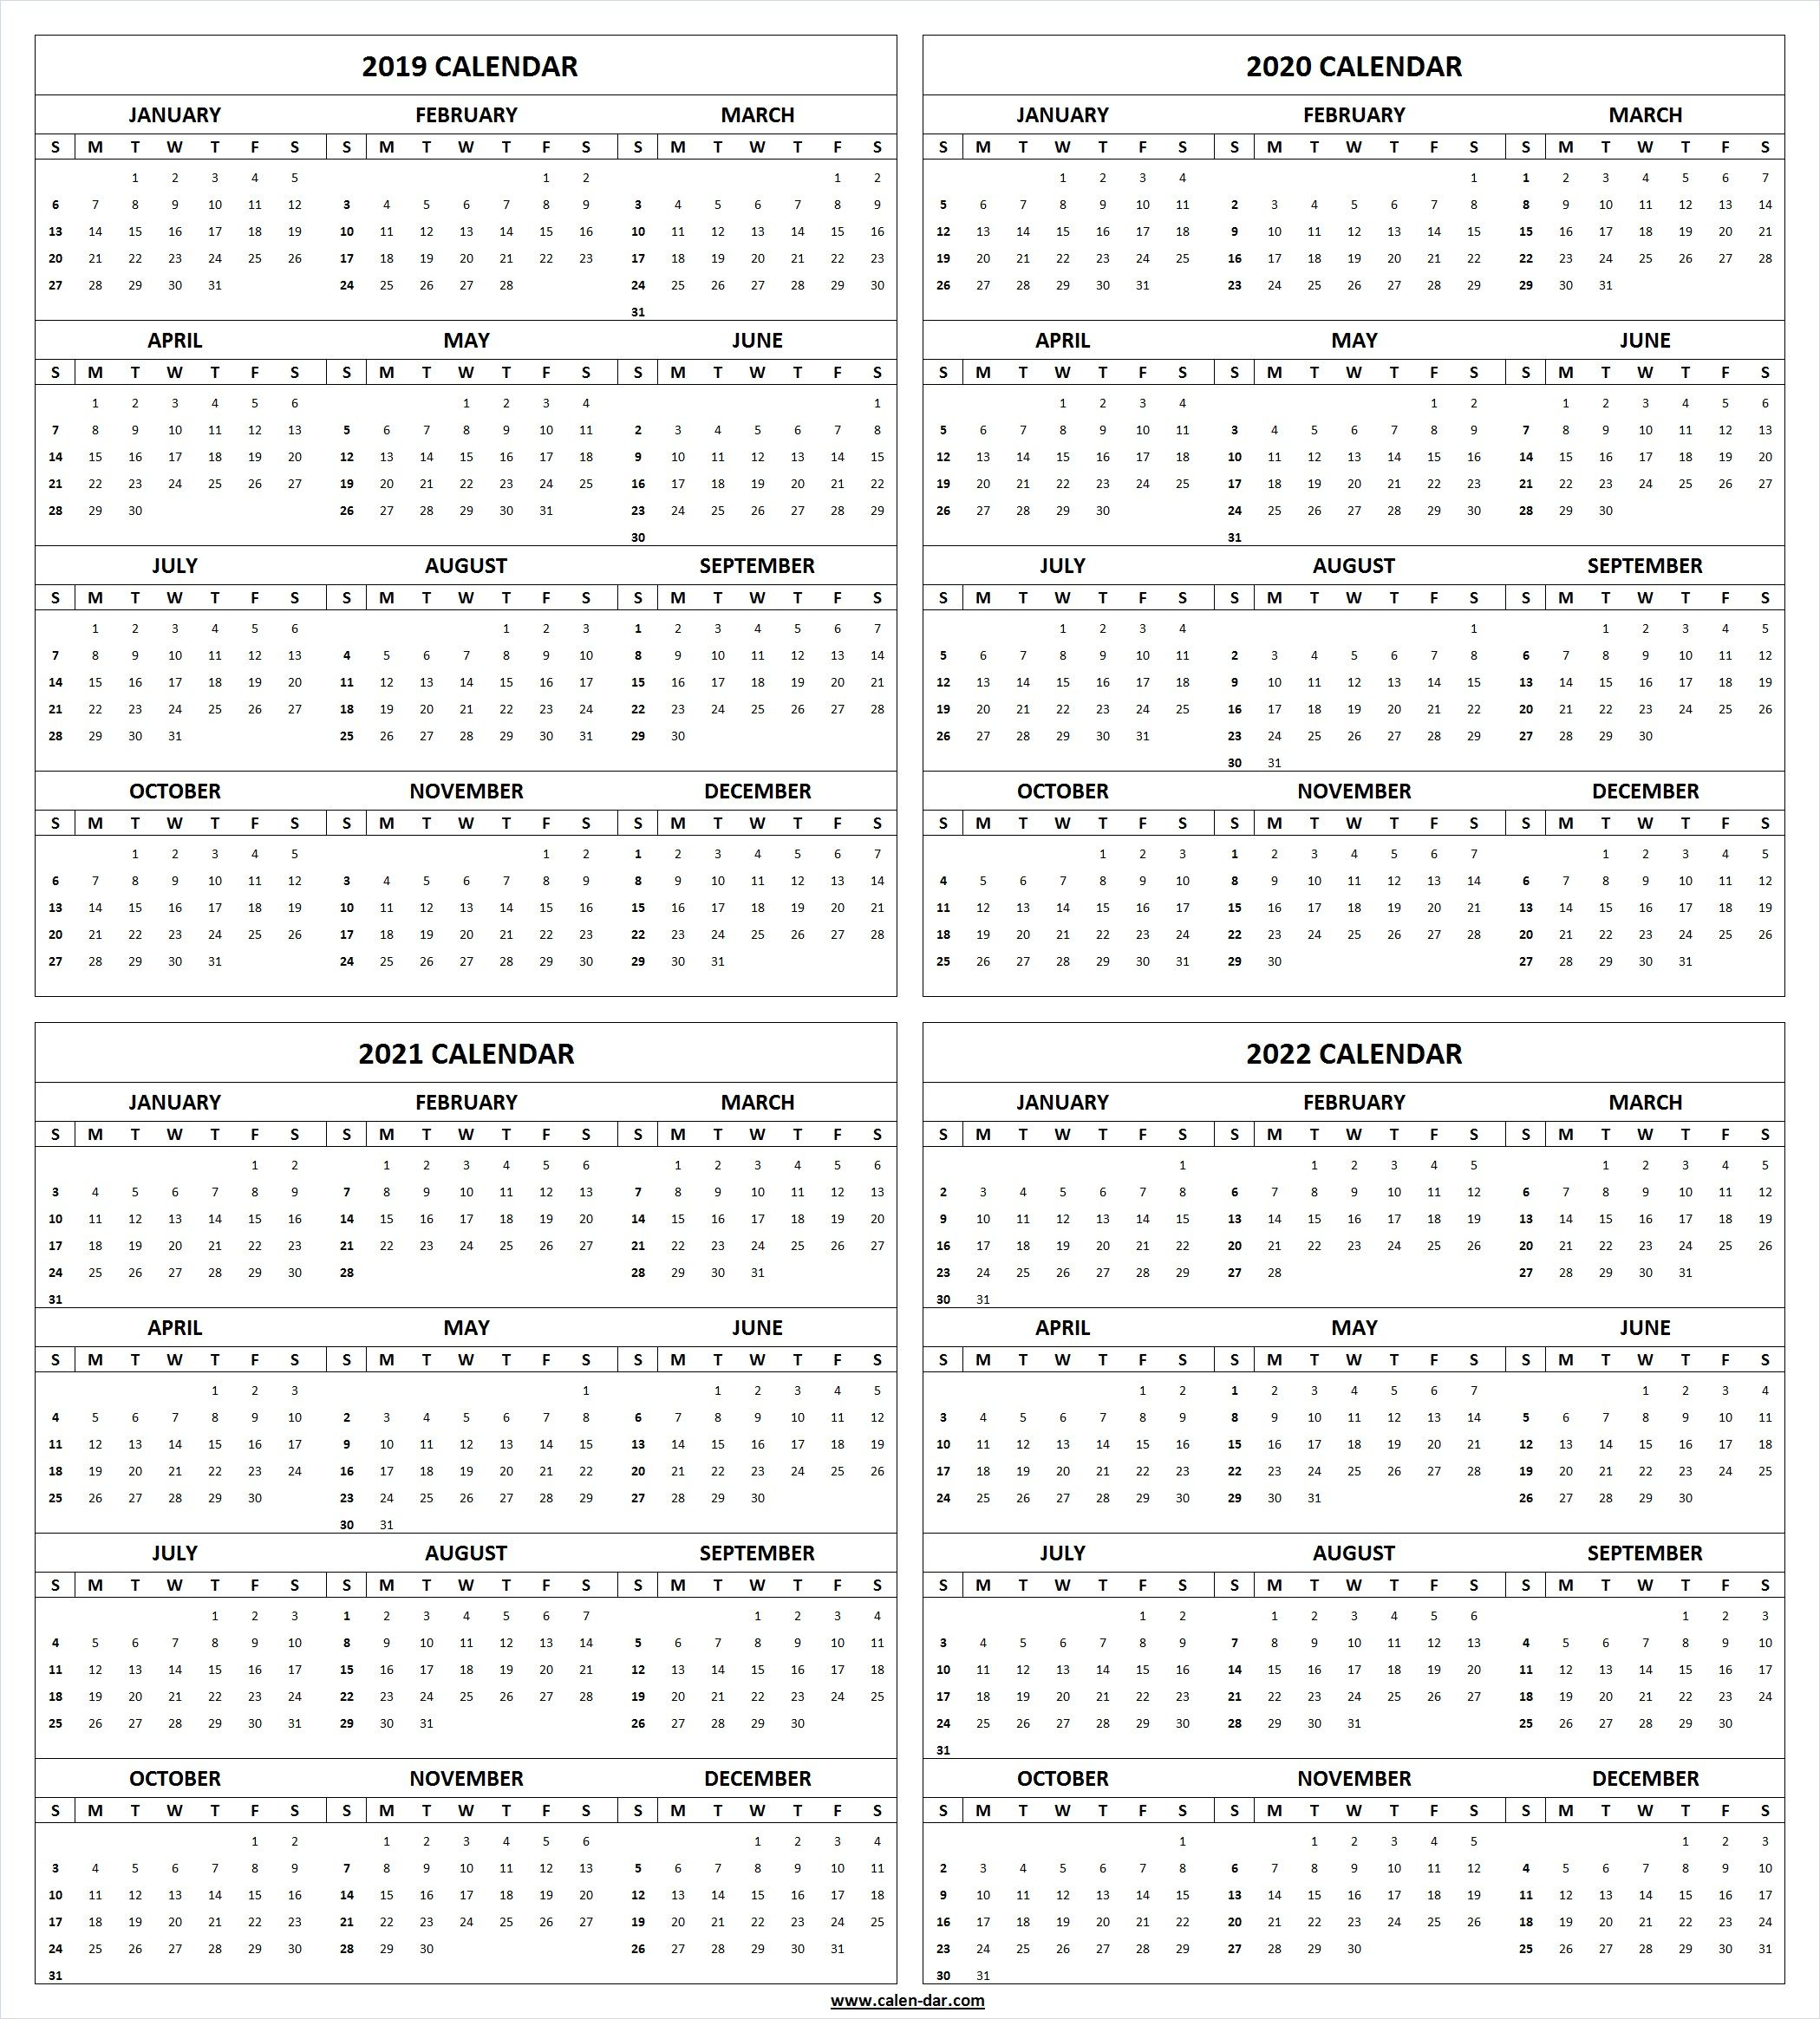 Get Free Blank Printable 2019 2020 2021 2022 Calendar Template pertaining to Printable Calendar 2019-2020 Year At A Glance